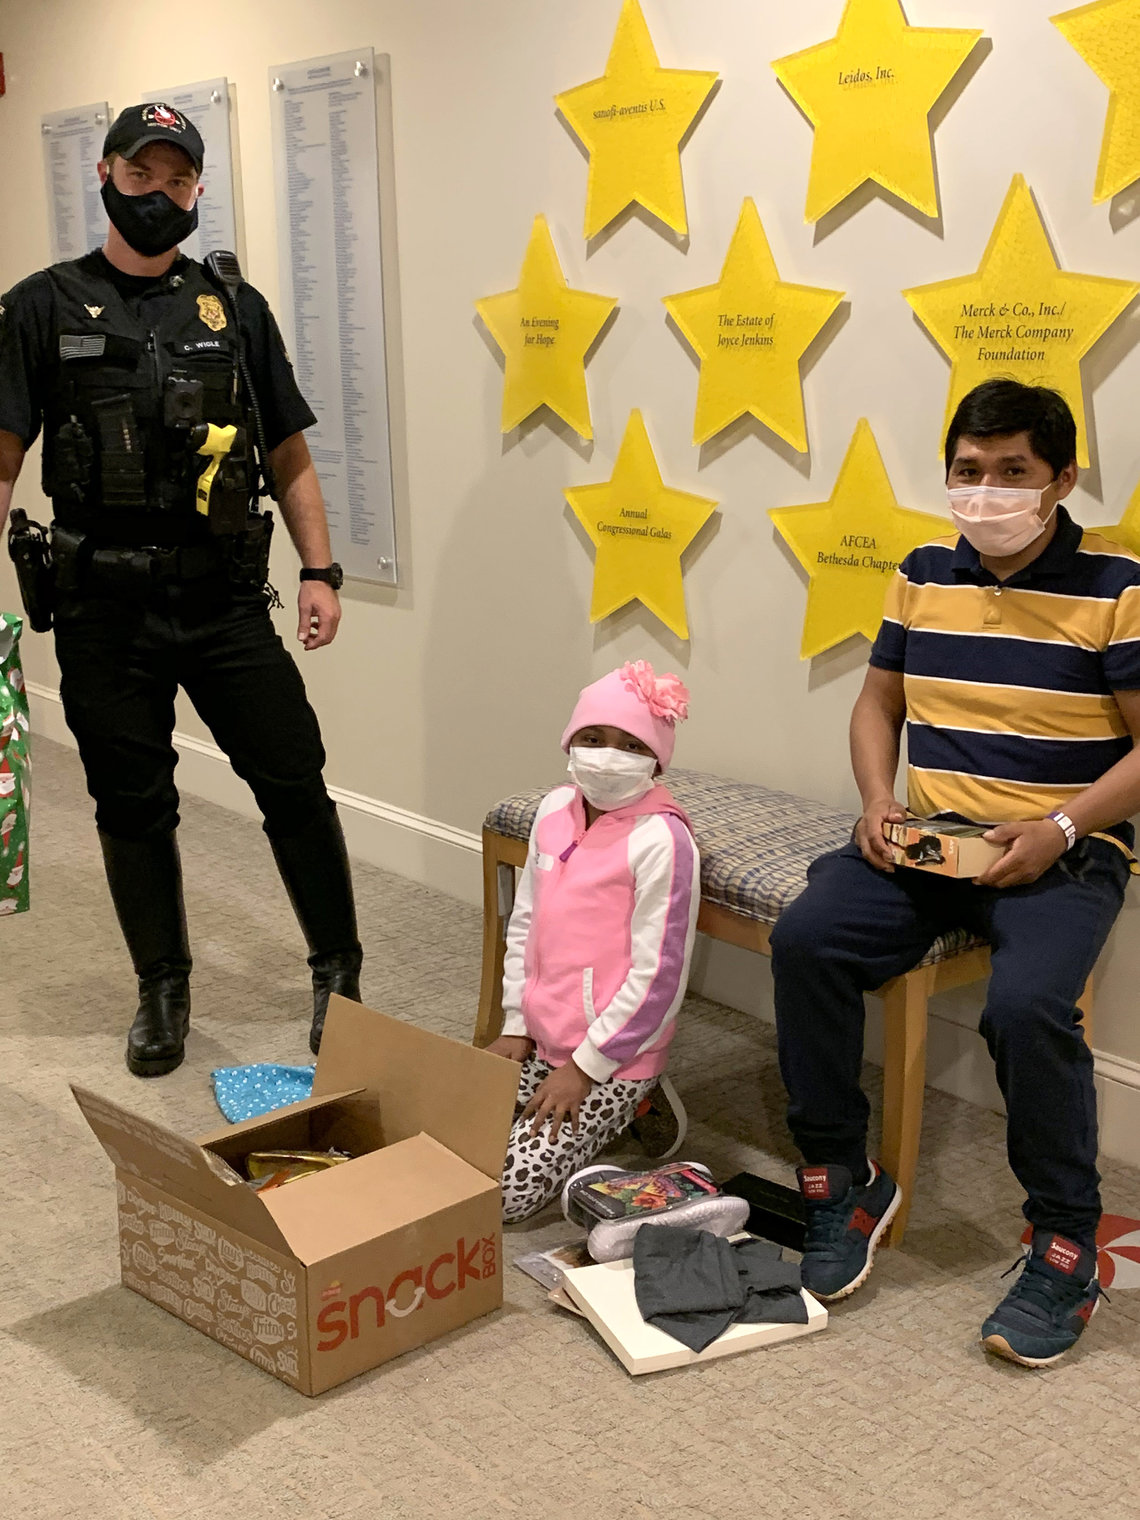 Police officer watches a young patient open presents